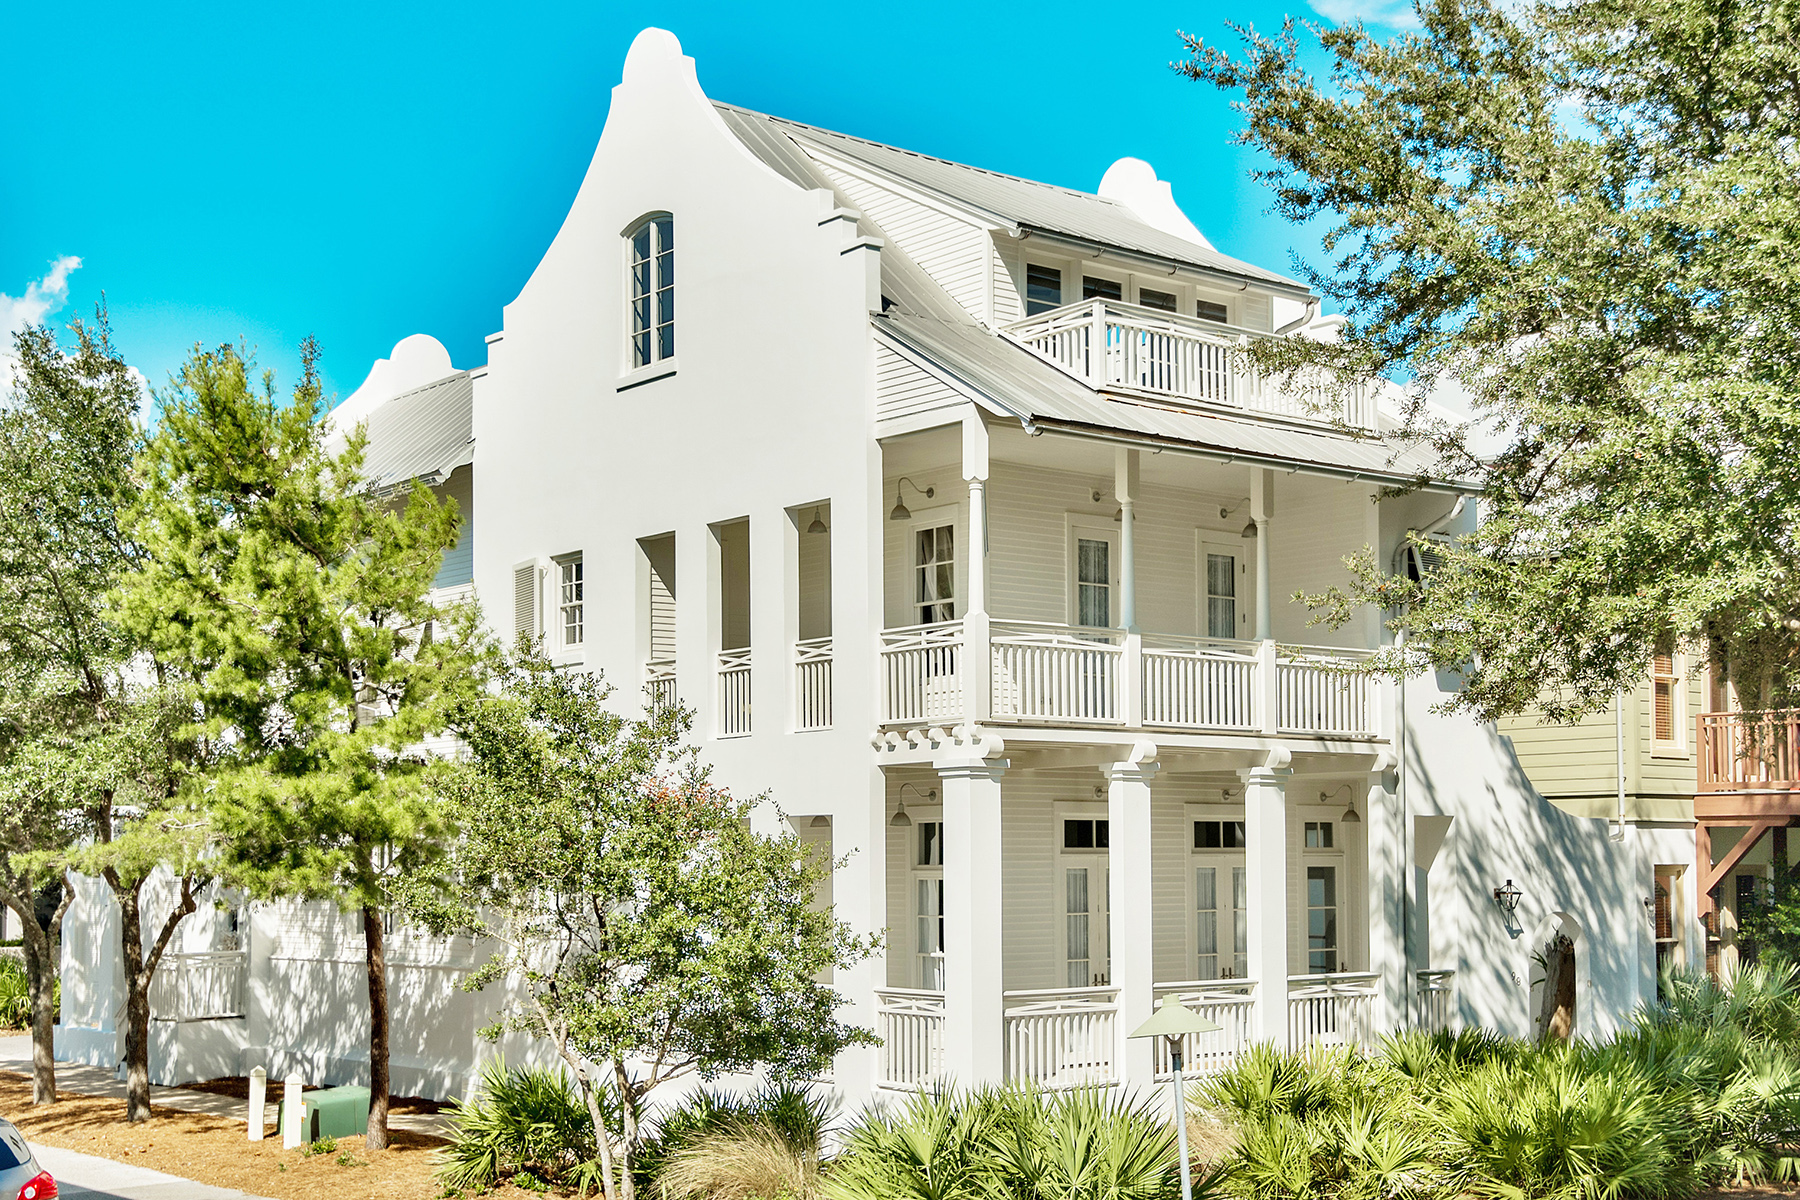 Single Family Home for Sale at CLASSIC COURTYARD HOME WITH POOL IDEALLY LOCATED IN ROSEMARY BEACH 98 W Long Green Road Rosemary Beach, Rosemary Beach, Florida, 32461 United States